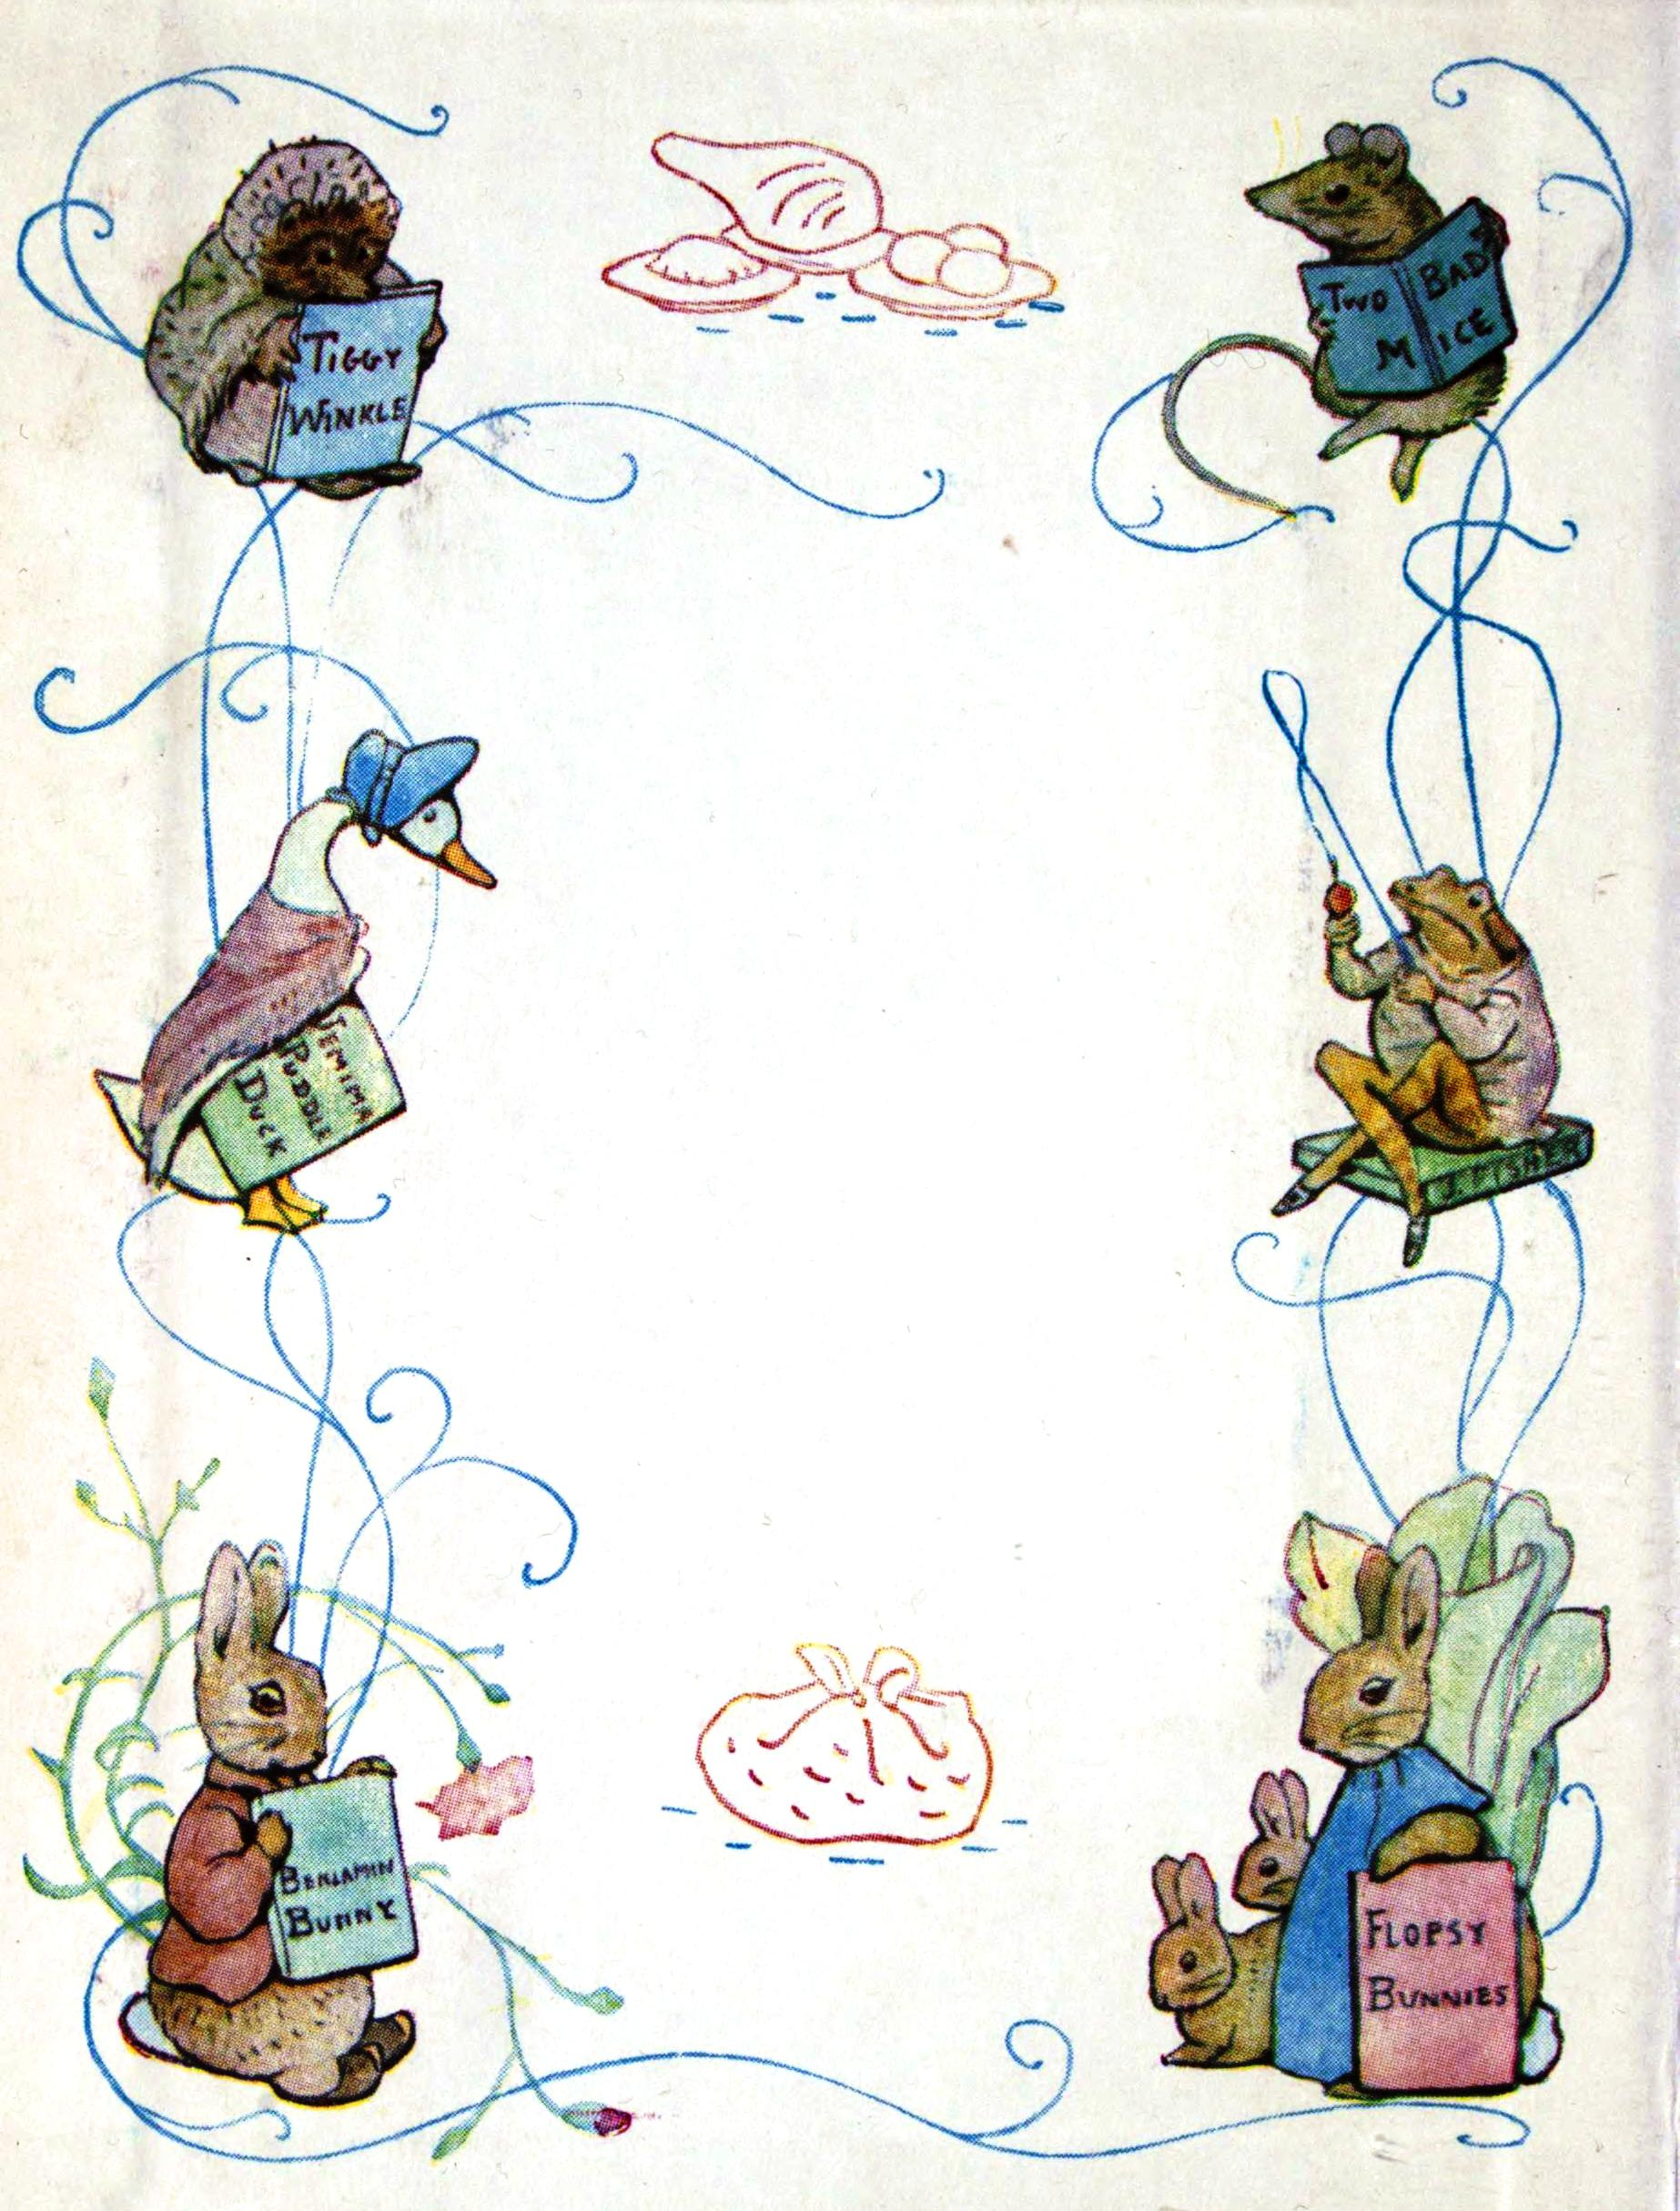 Free Beatrix Potter Cliparts, Download Free Clip Art, Free Clip Art.